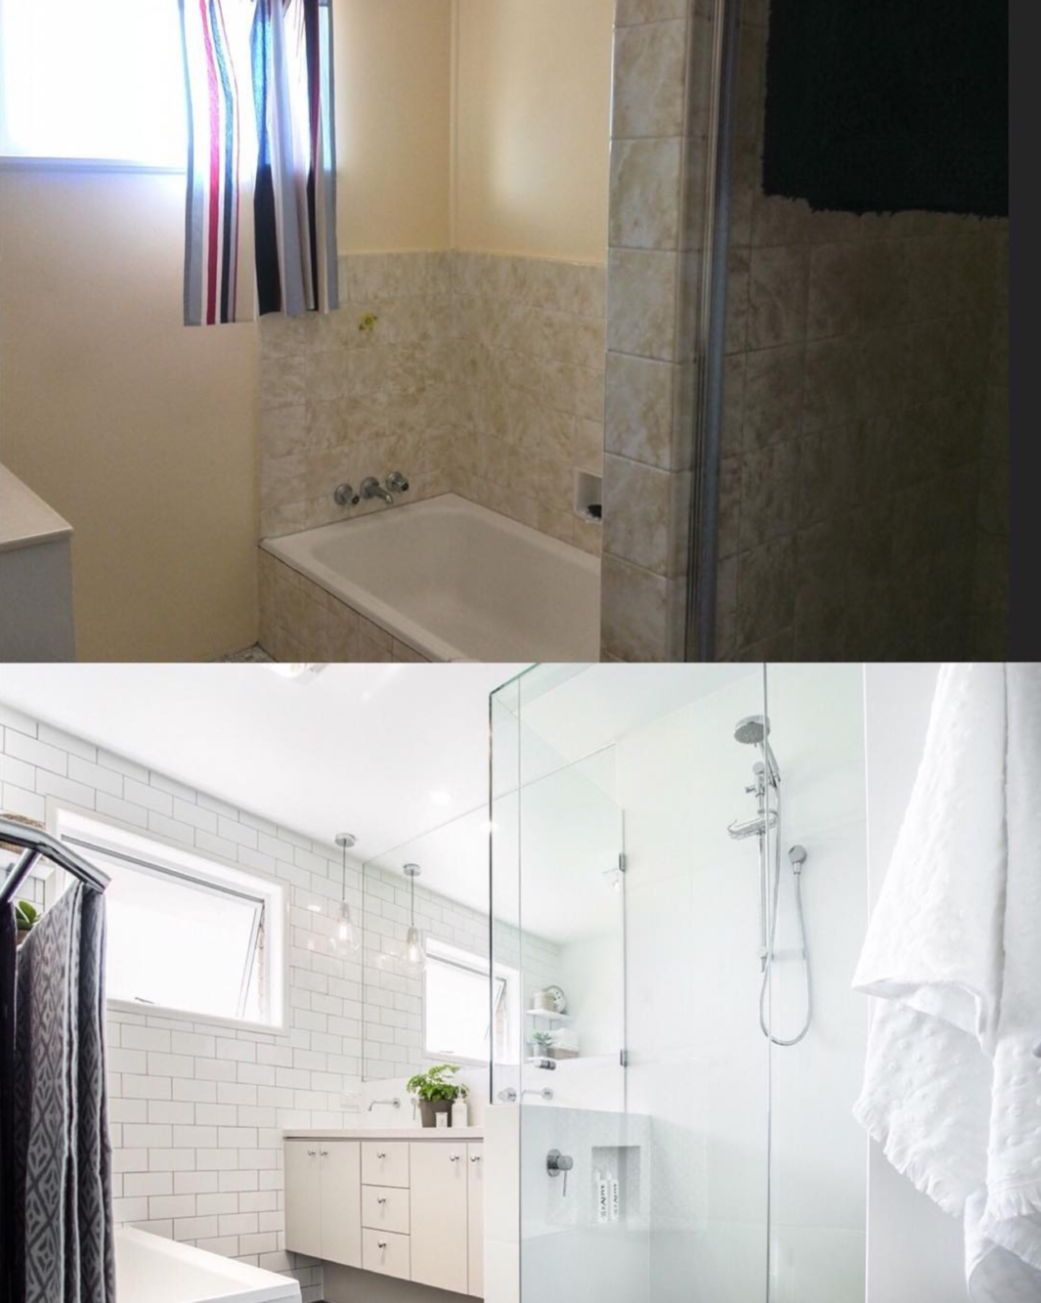 You Can View Bathroom Remodel Ideas Love It Bathroom Afterbefore Bathroomremodel Full Bathroom Remodel Shower Remodel Bathrooms Remodel